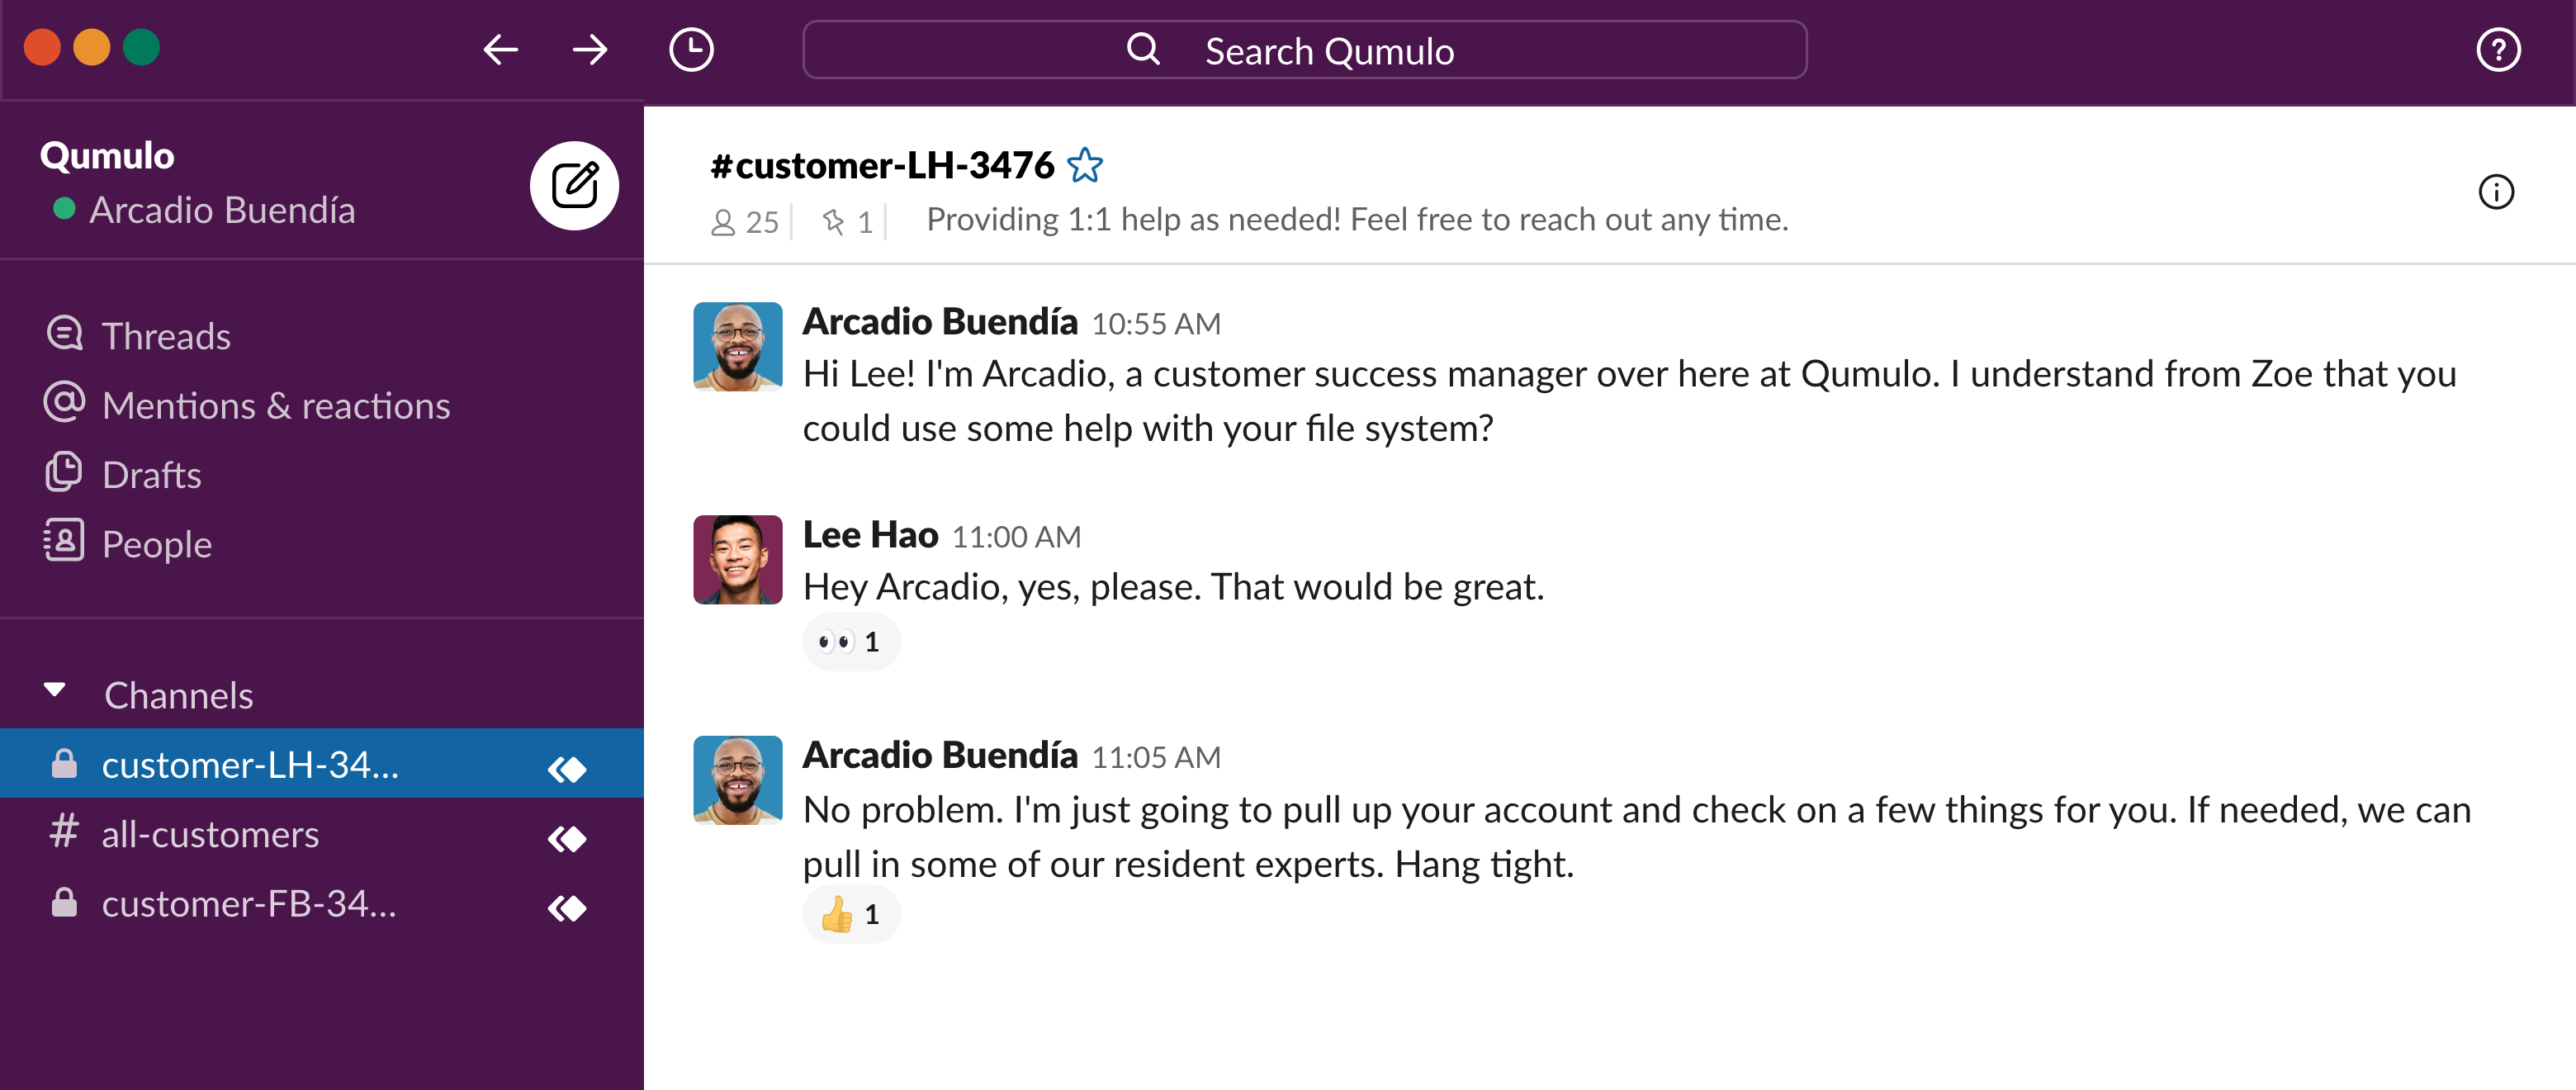 Qumulo one-on-one customer service experience in Slack